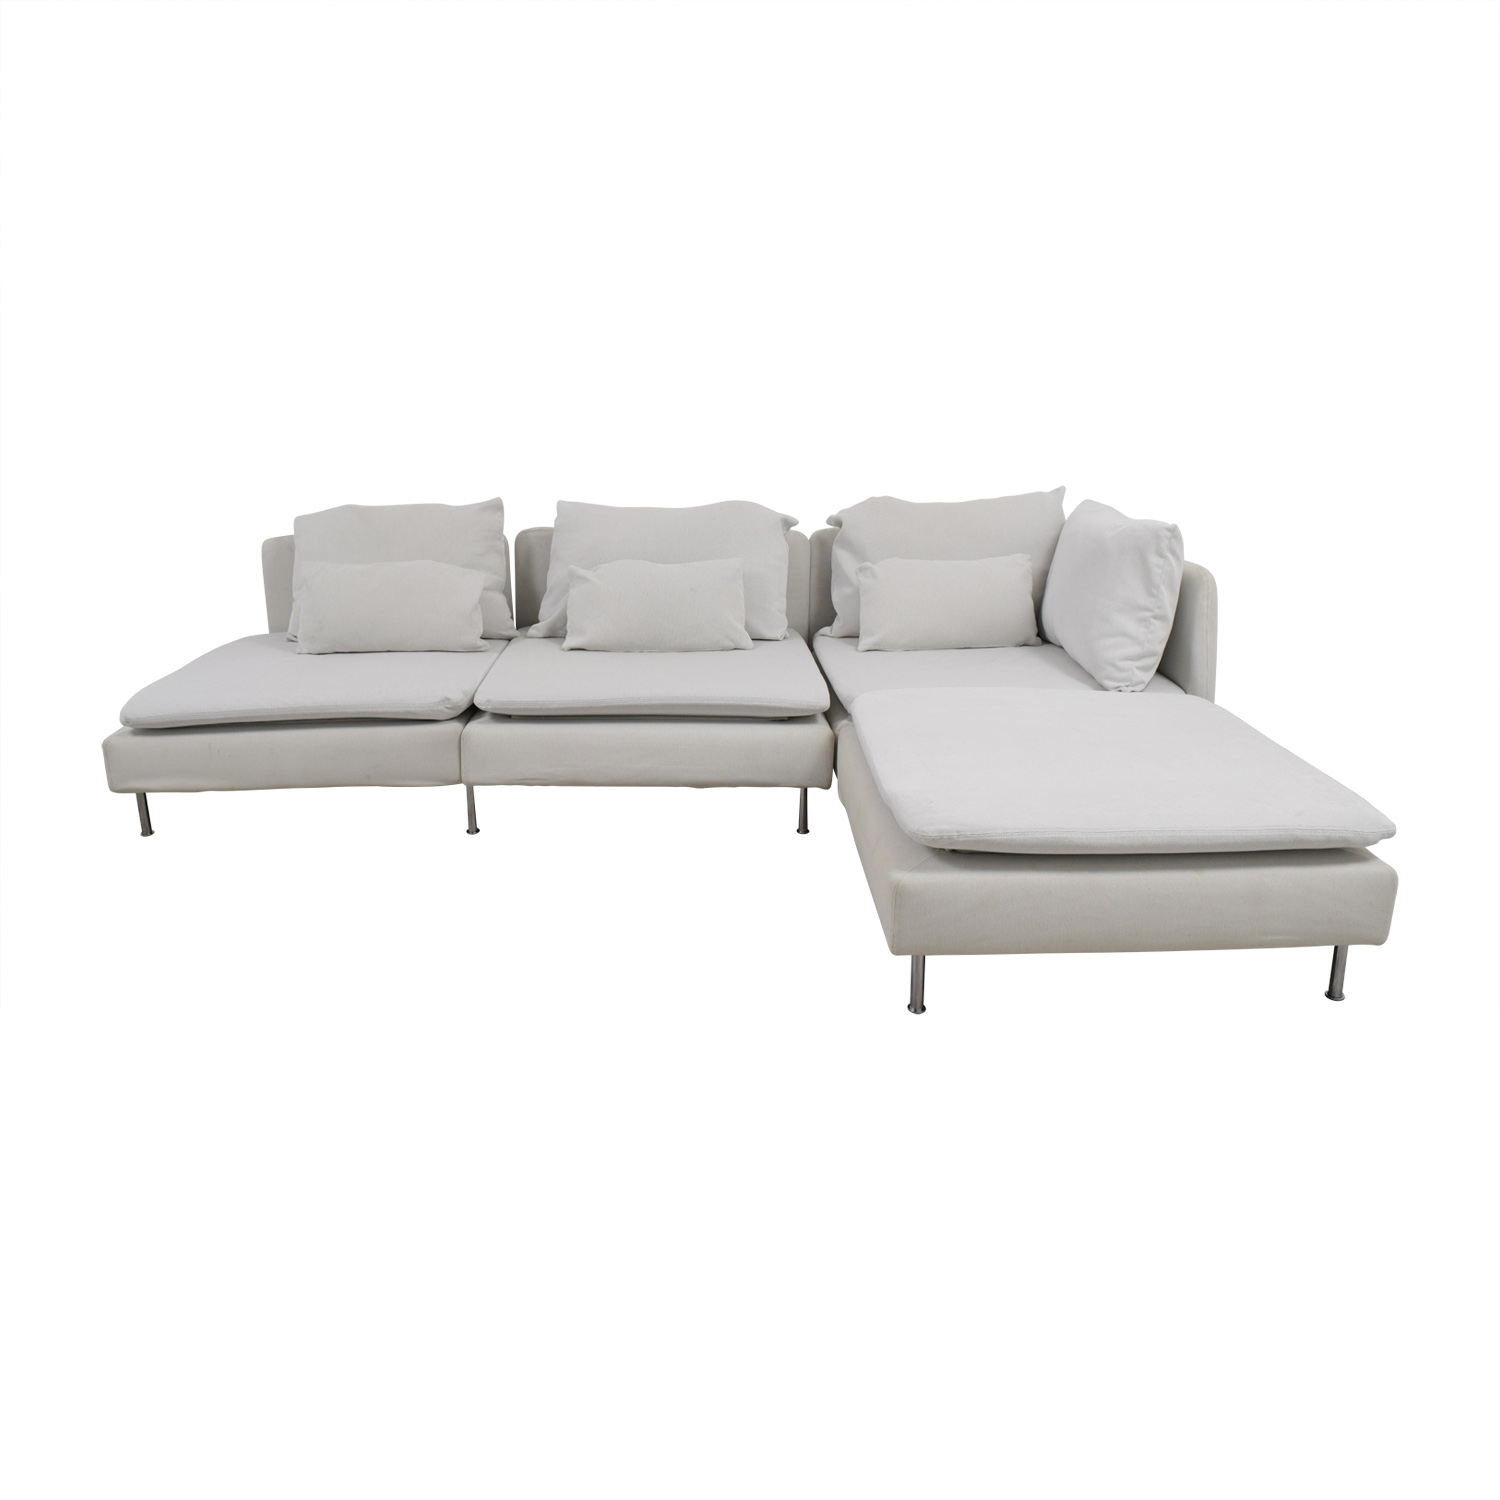 Ikea Soderhamn White Sectional Price